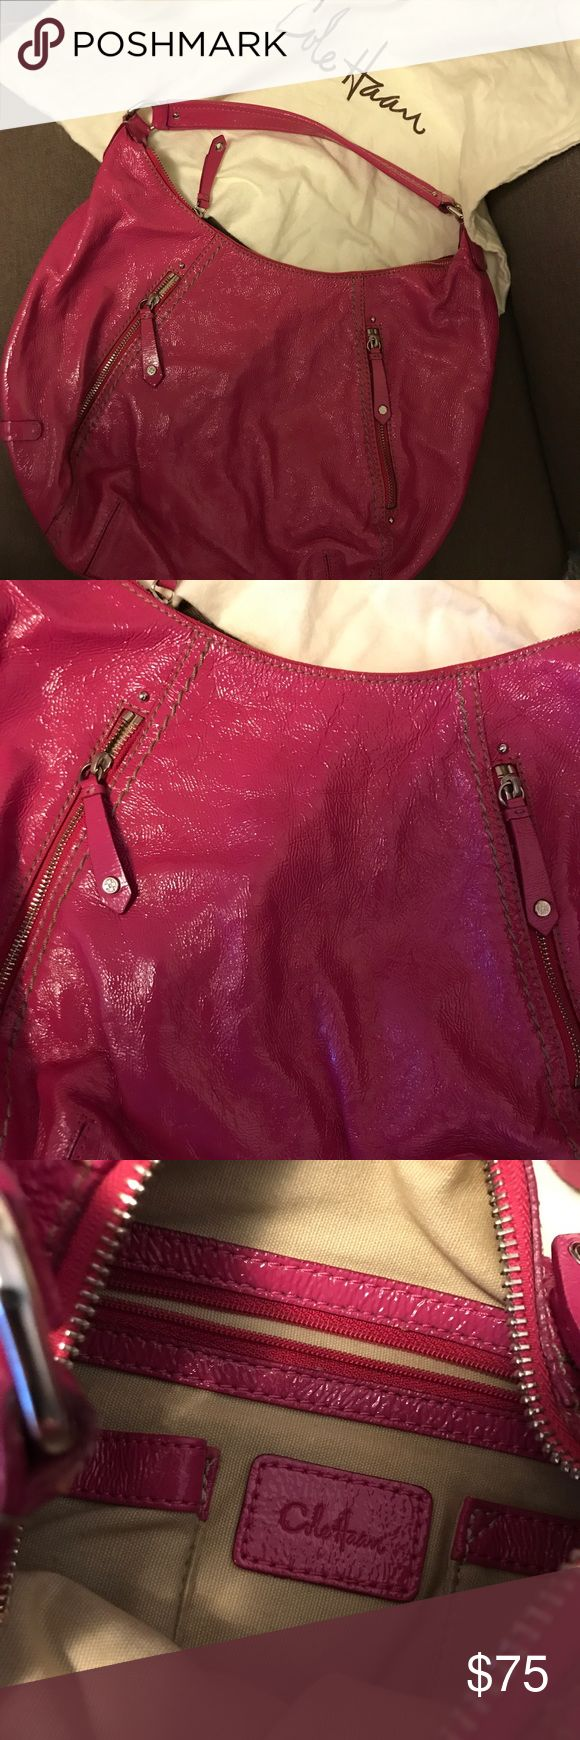 Cole Haan - lipstick pink - leather hobo bag Cole Haan - lipstick pink - leather - hobo bag - gently used purse - beautiful leather - fuchsia hot pink color - Barbie pink - perfect for Spring - MAKE AN OFFER! Cole Haan Bags Hobos